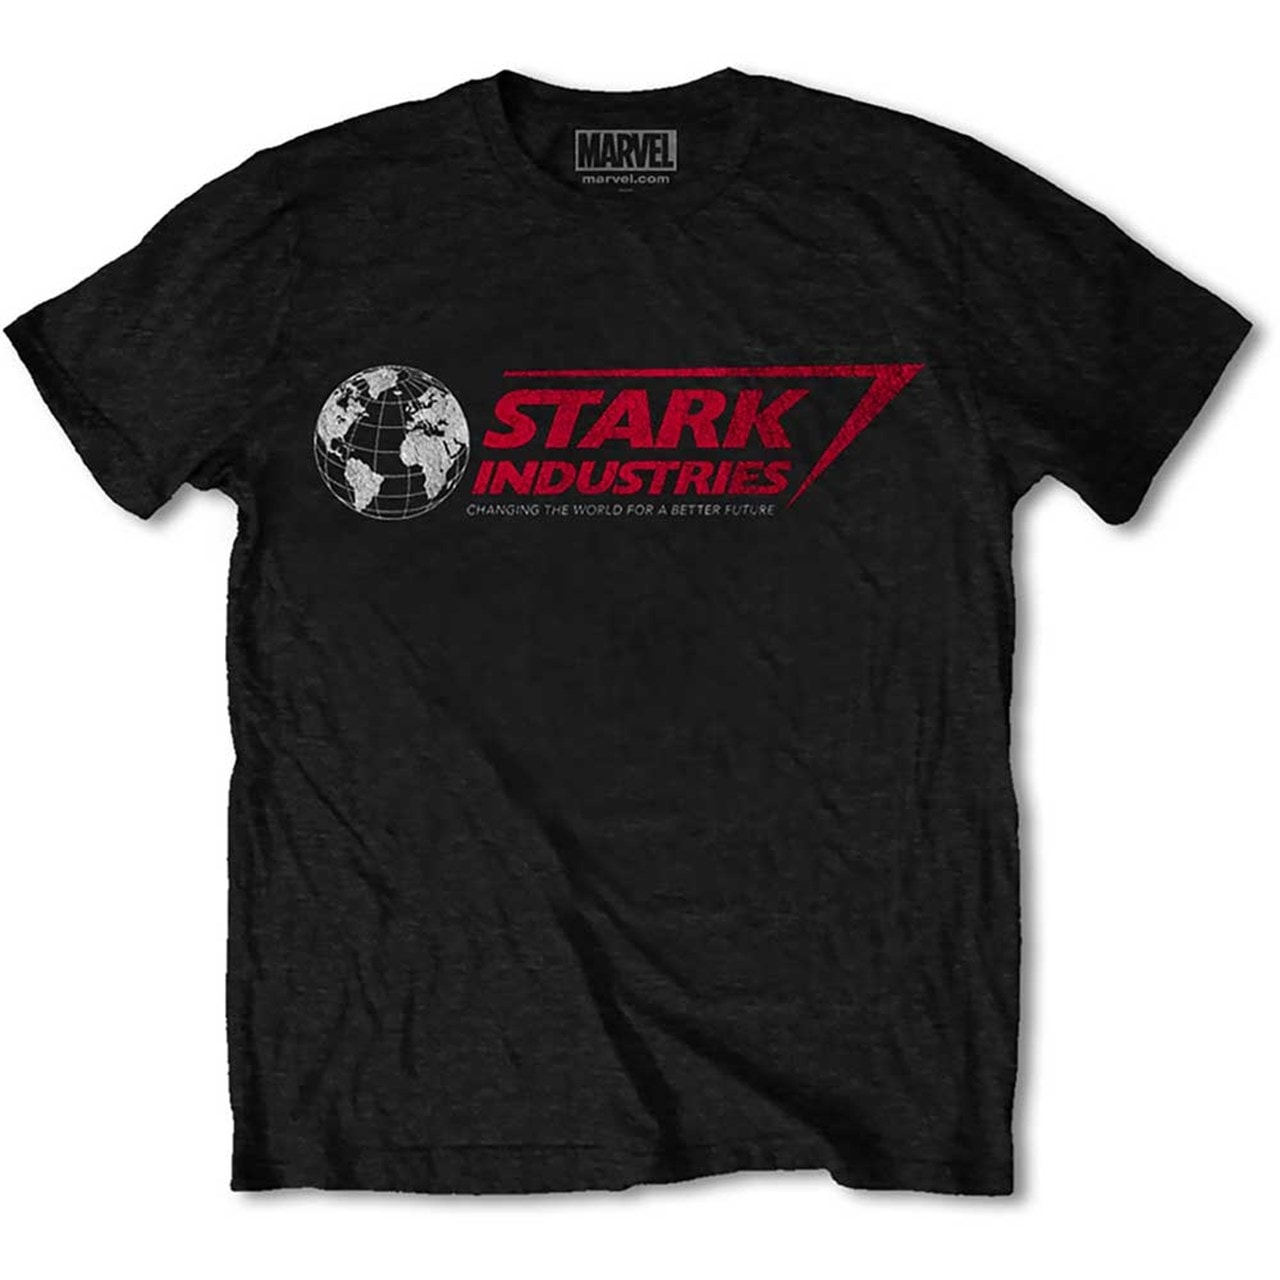 Iron Man: Marvel Stark Industries (Small) - 2